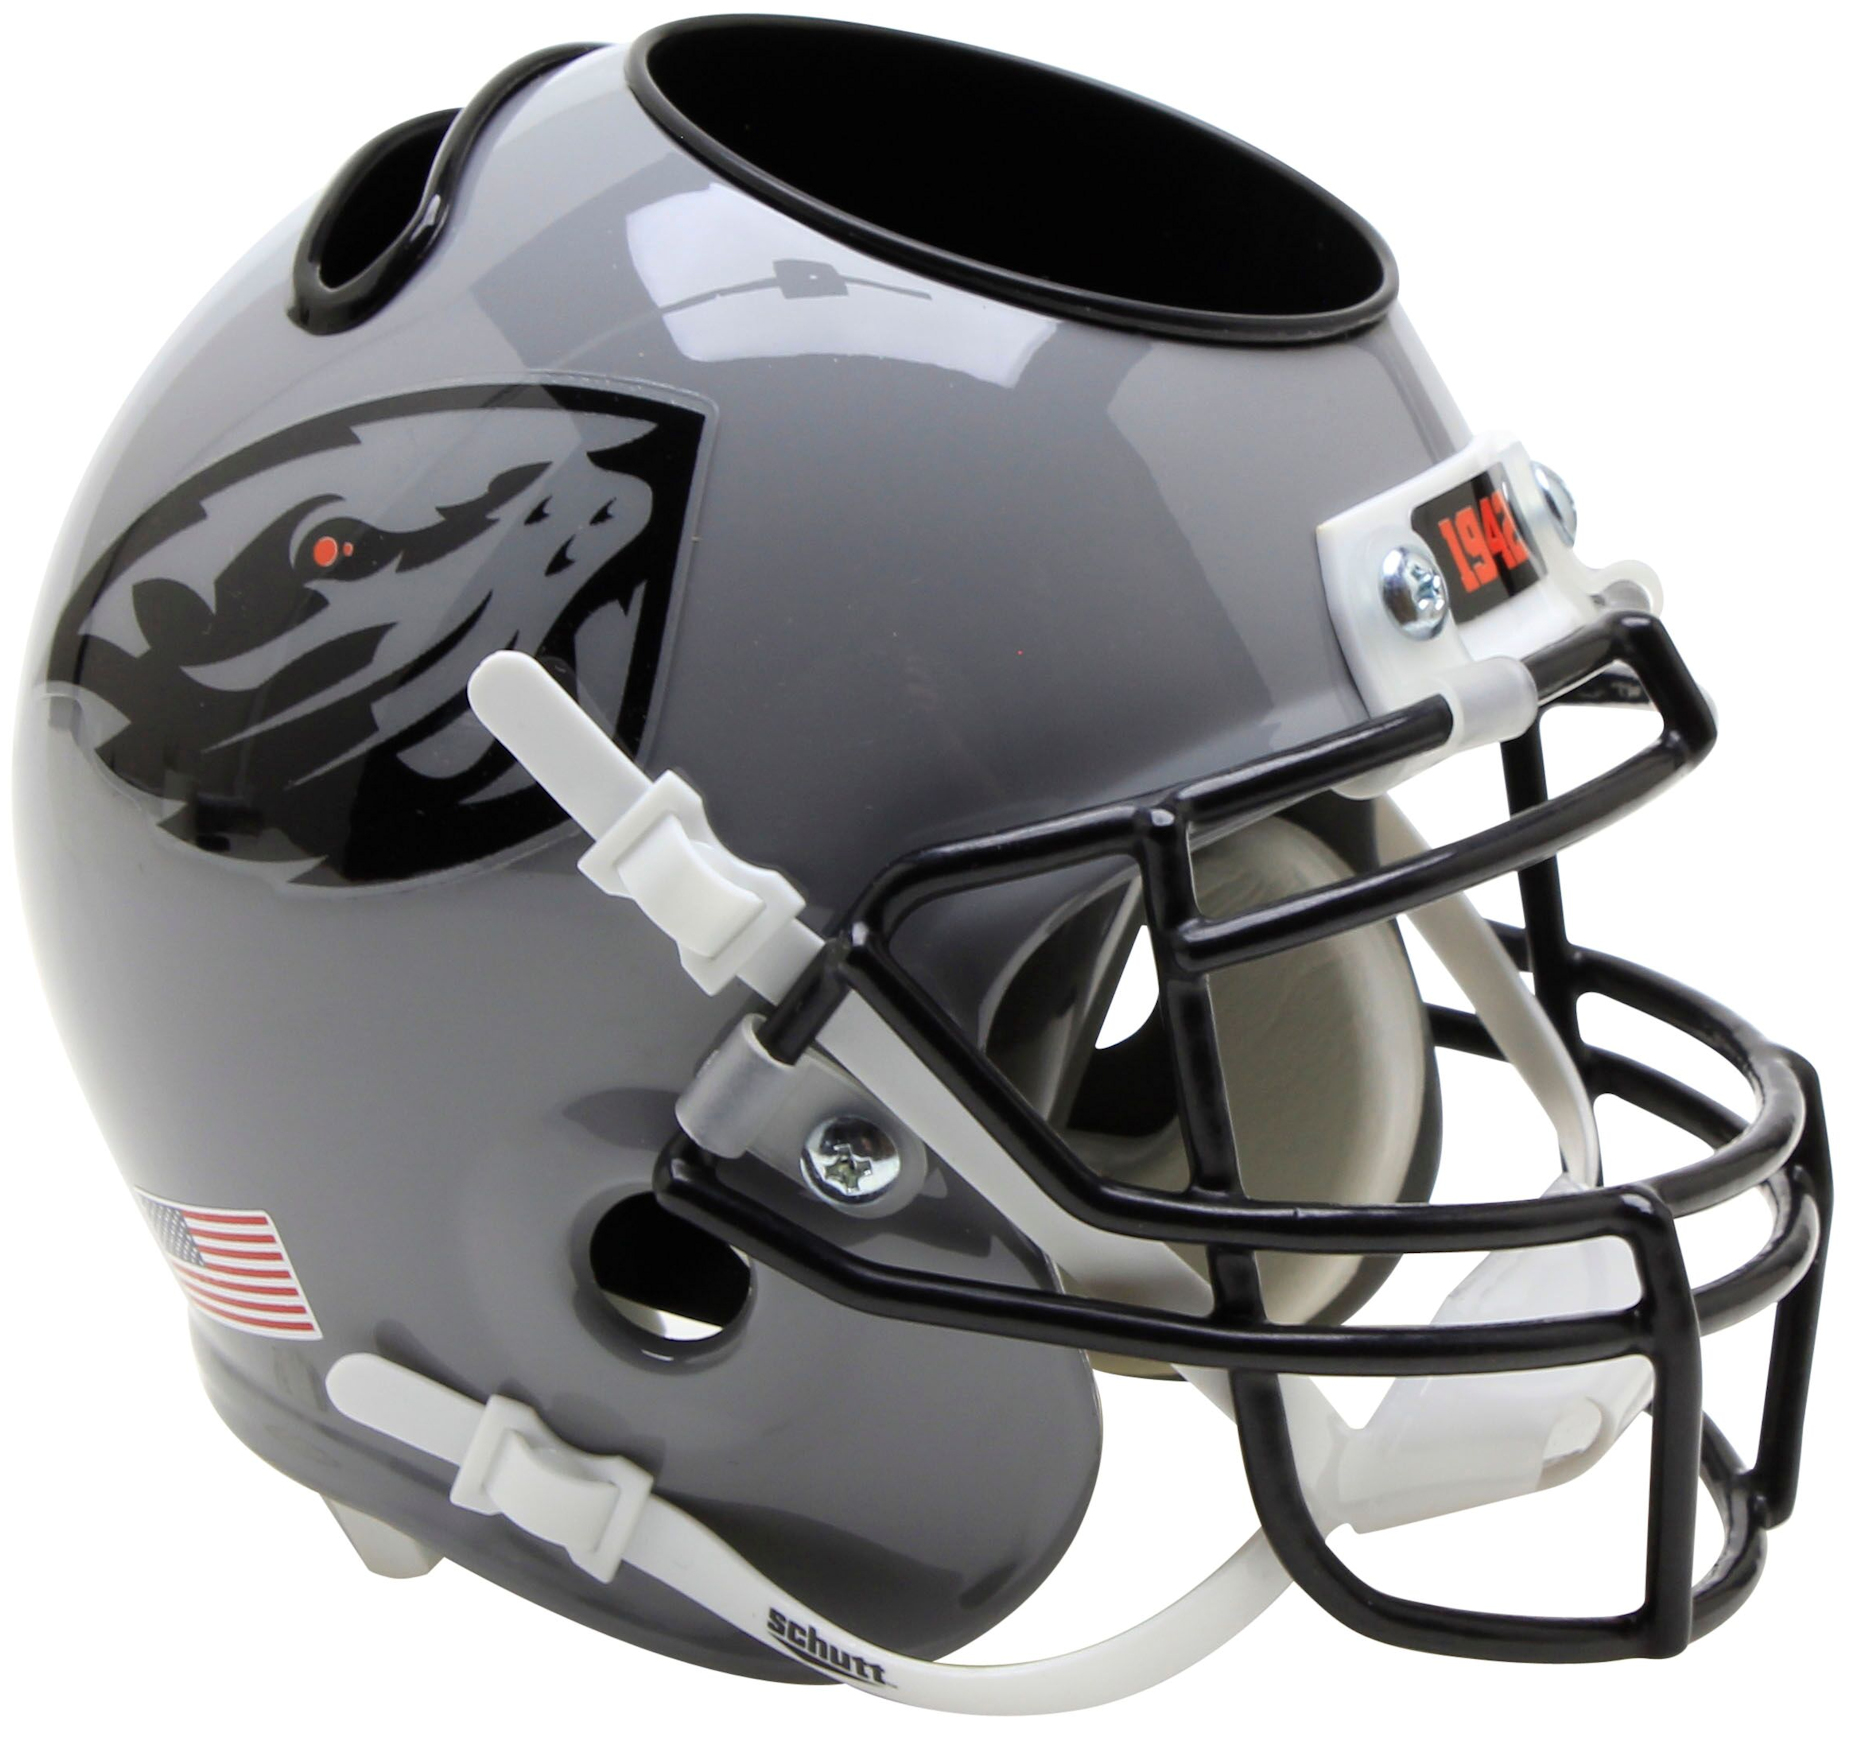 Oregon State Beavers Miniature Football Helmet Desk Caddy <B>Grey</B>